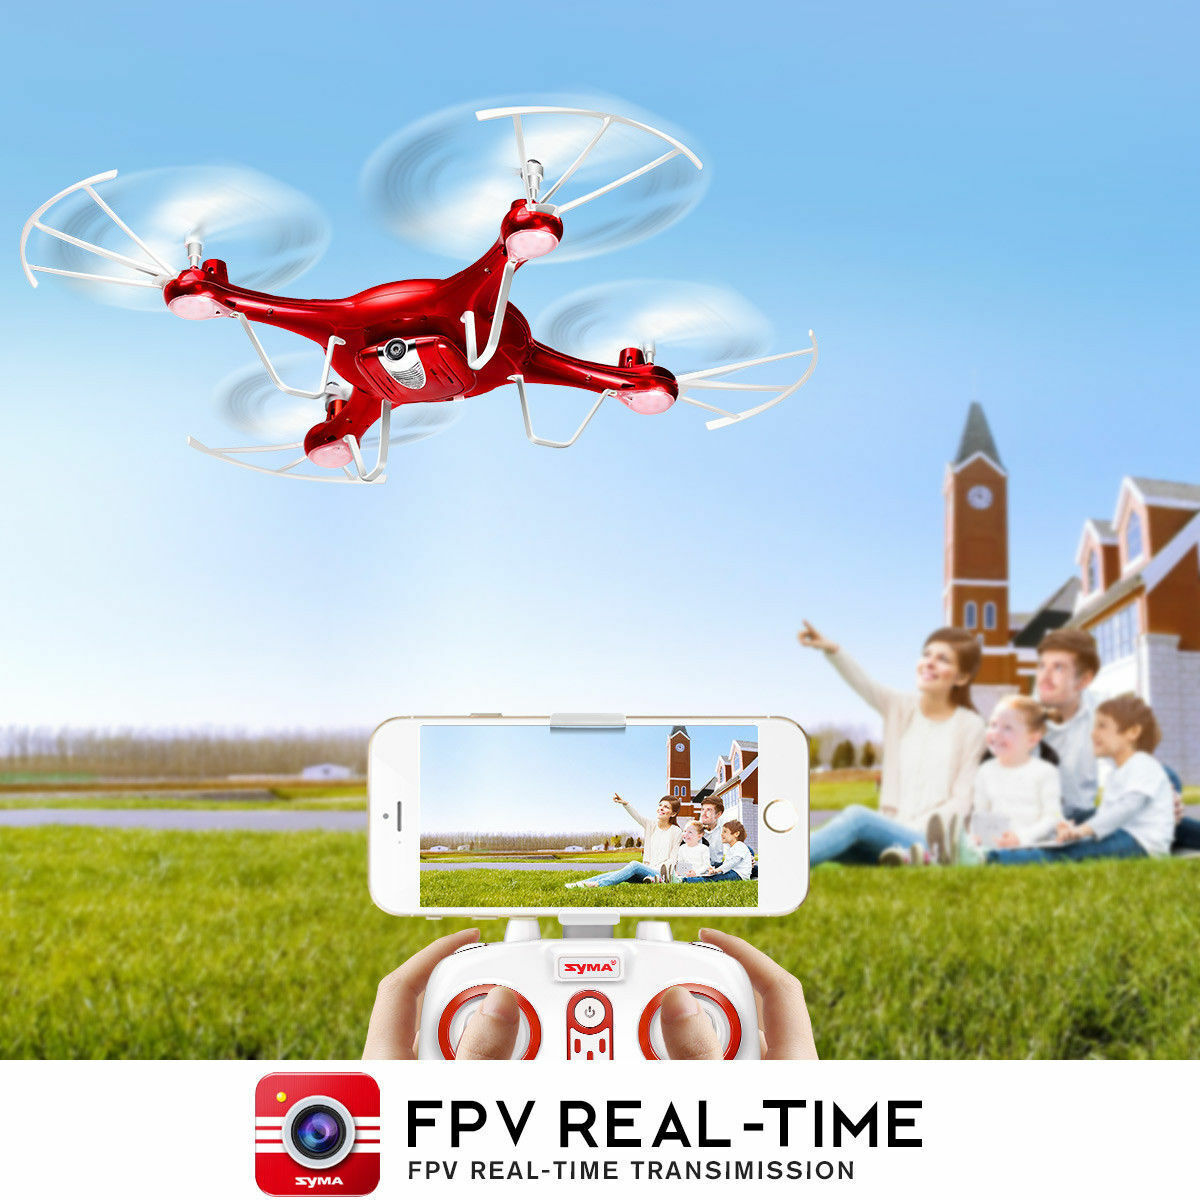 X5UW Syma 720p HD Camera FPV Headless Mode Drone App RC Quadcopter Altitude Hold